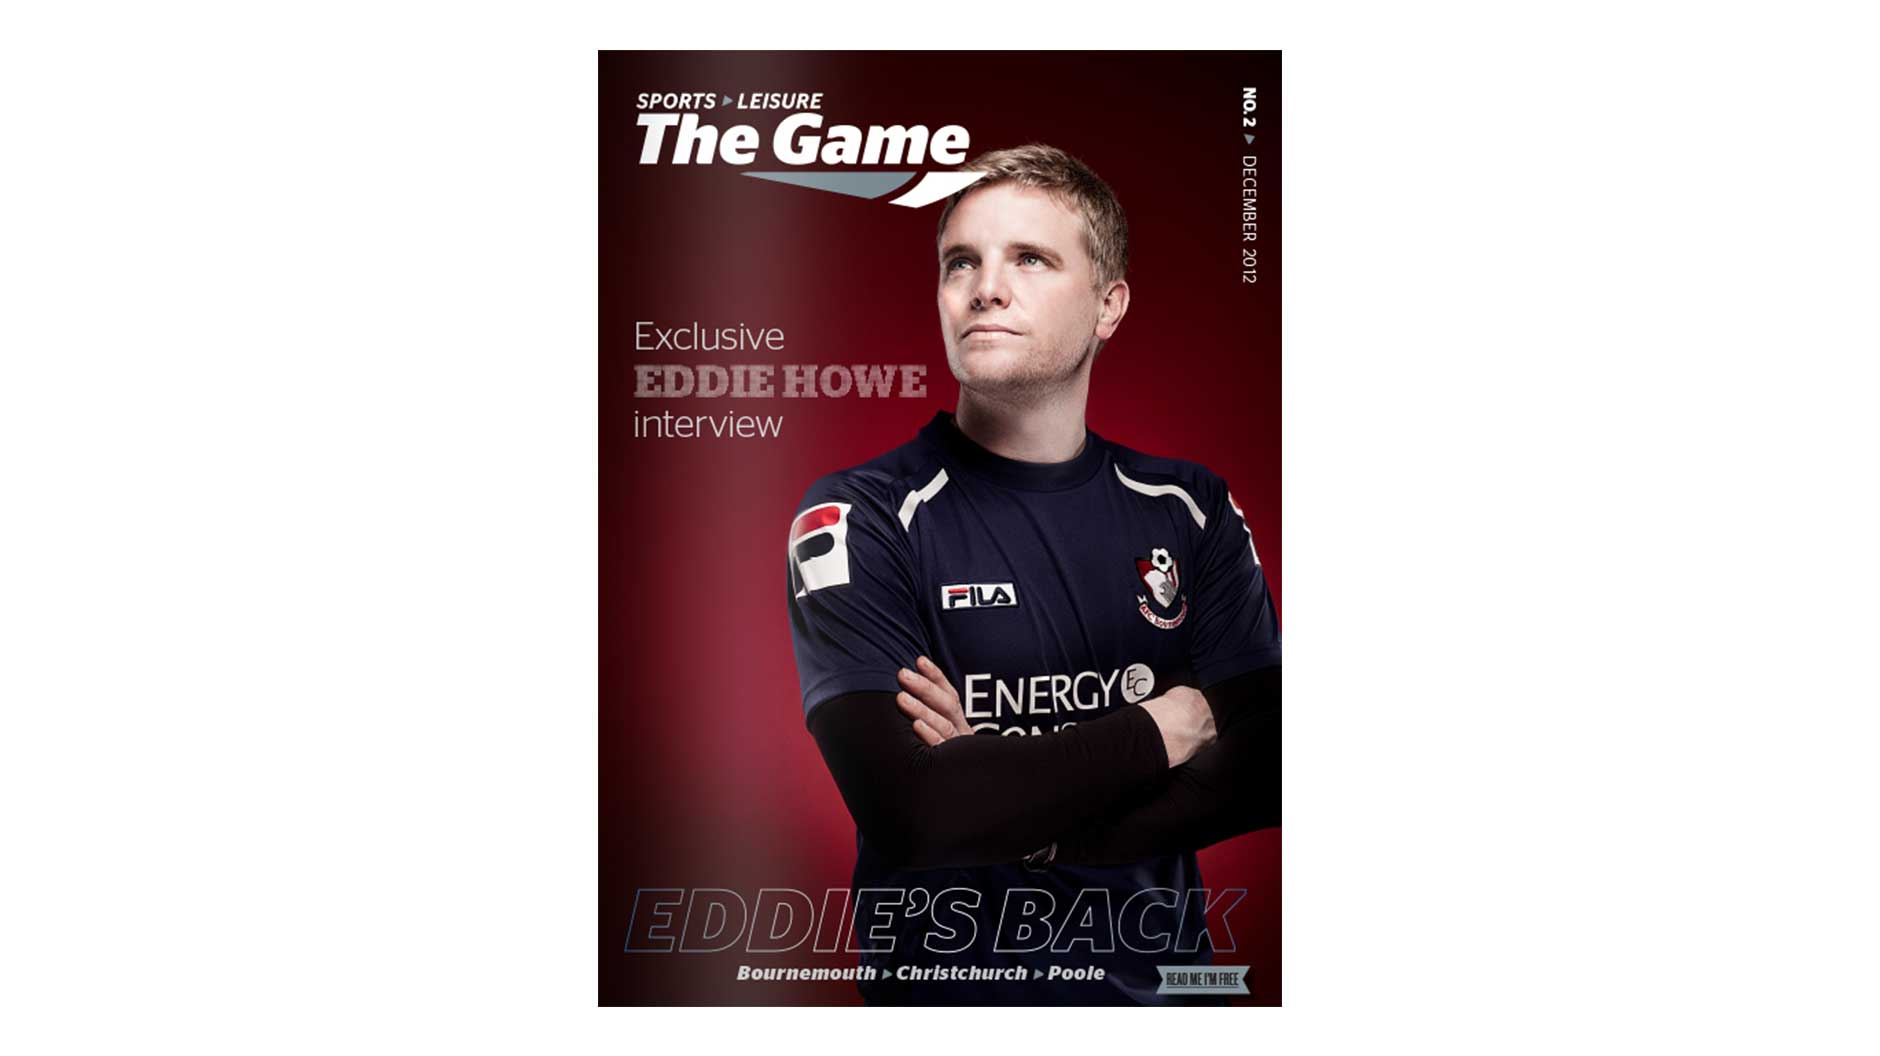 Game Magazine front cover December 2012 issue